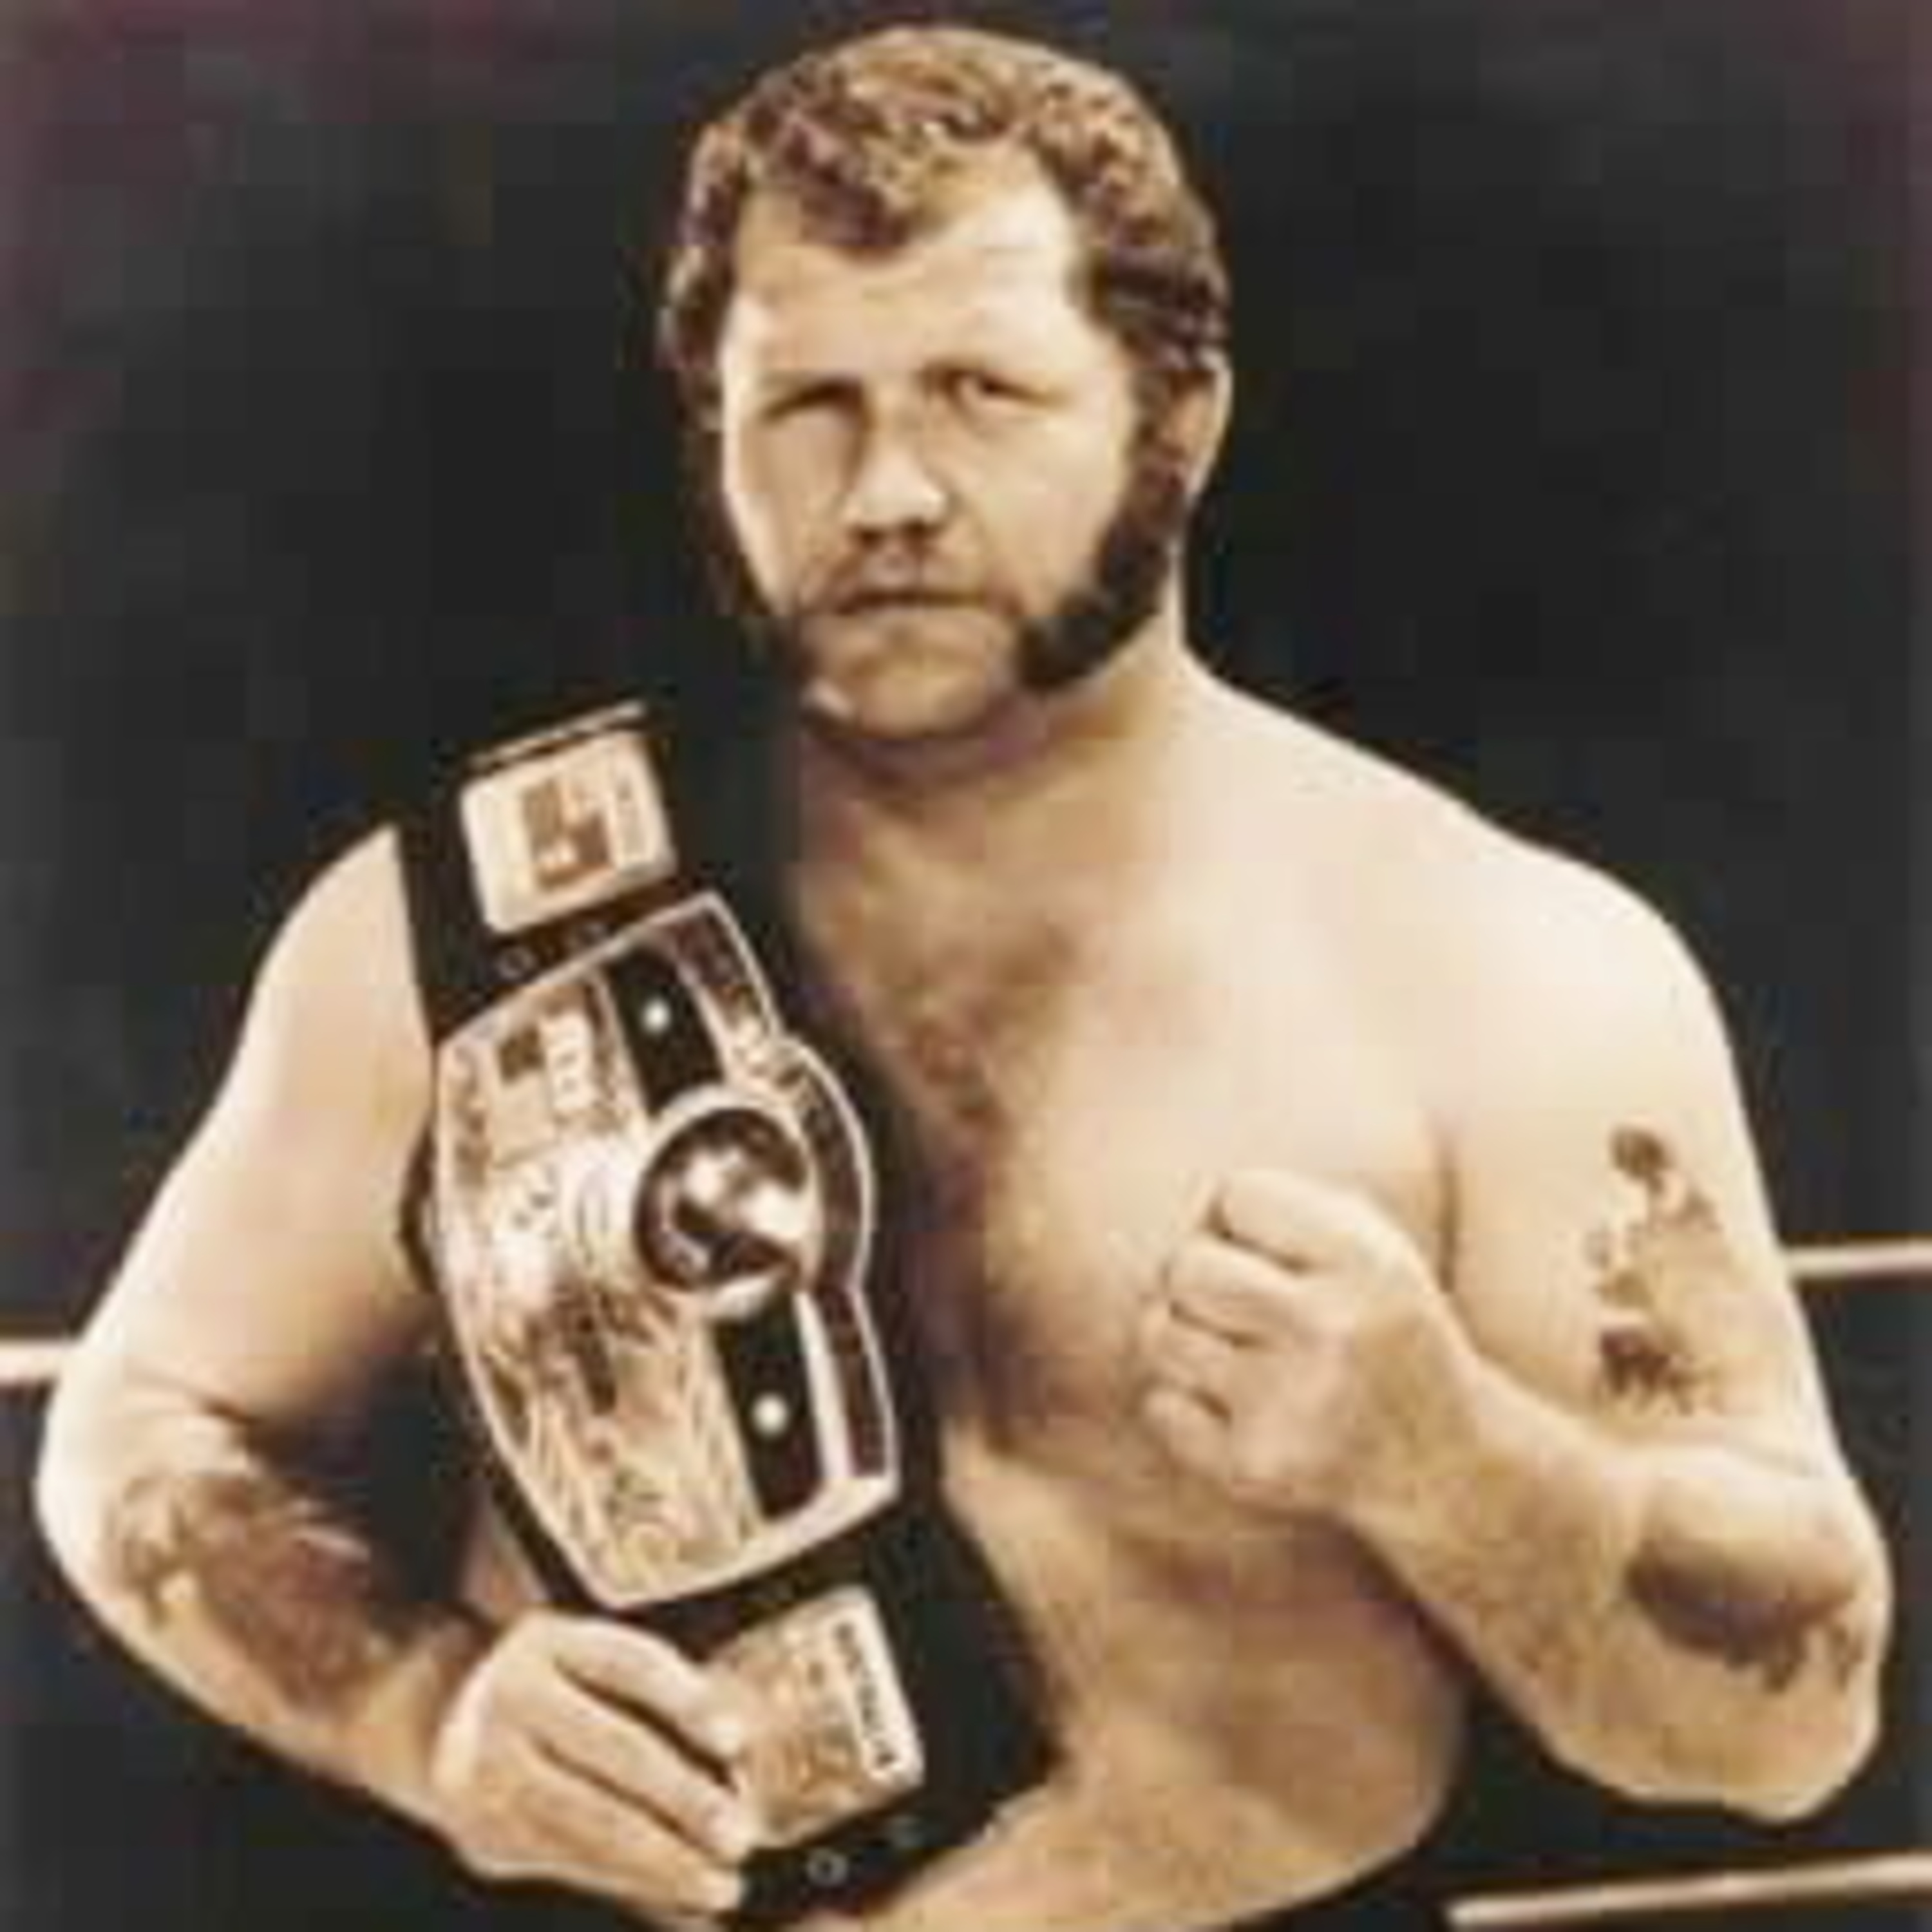 CHRISTMAS SPECIAL! A TRIBUTE TO NWA CHAMPION HARLEY RACE! EPISODE 49 IS UP! Don't MISS THIS ONE!!